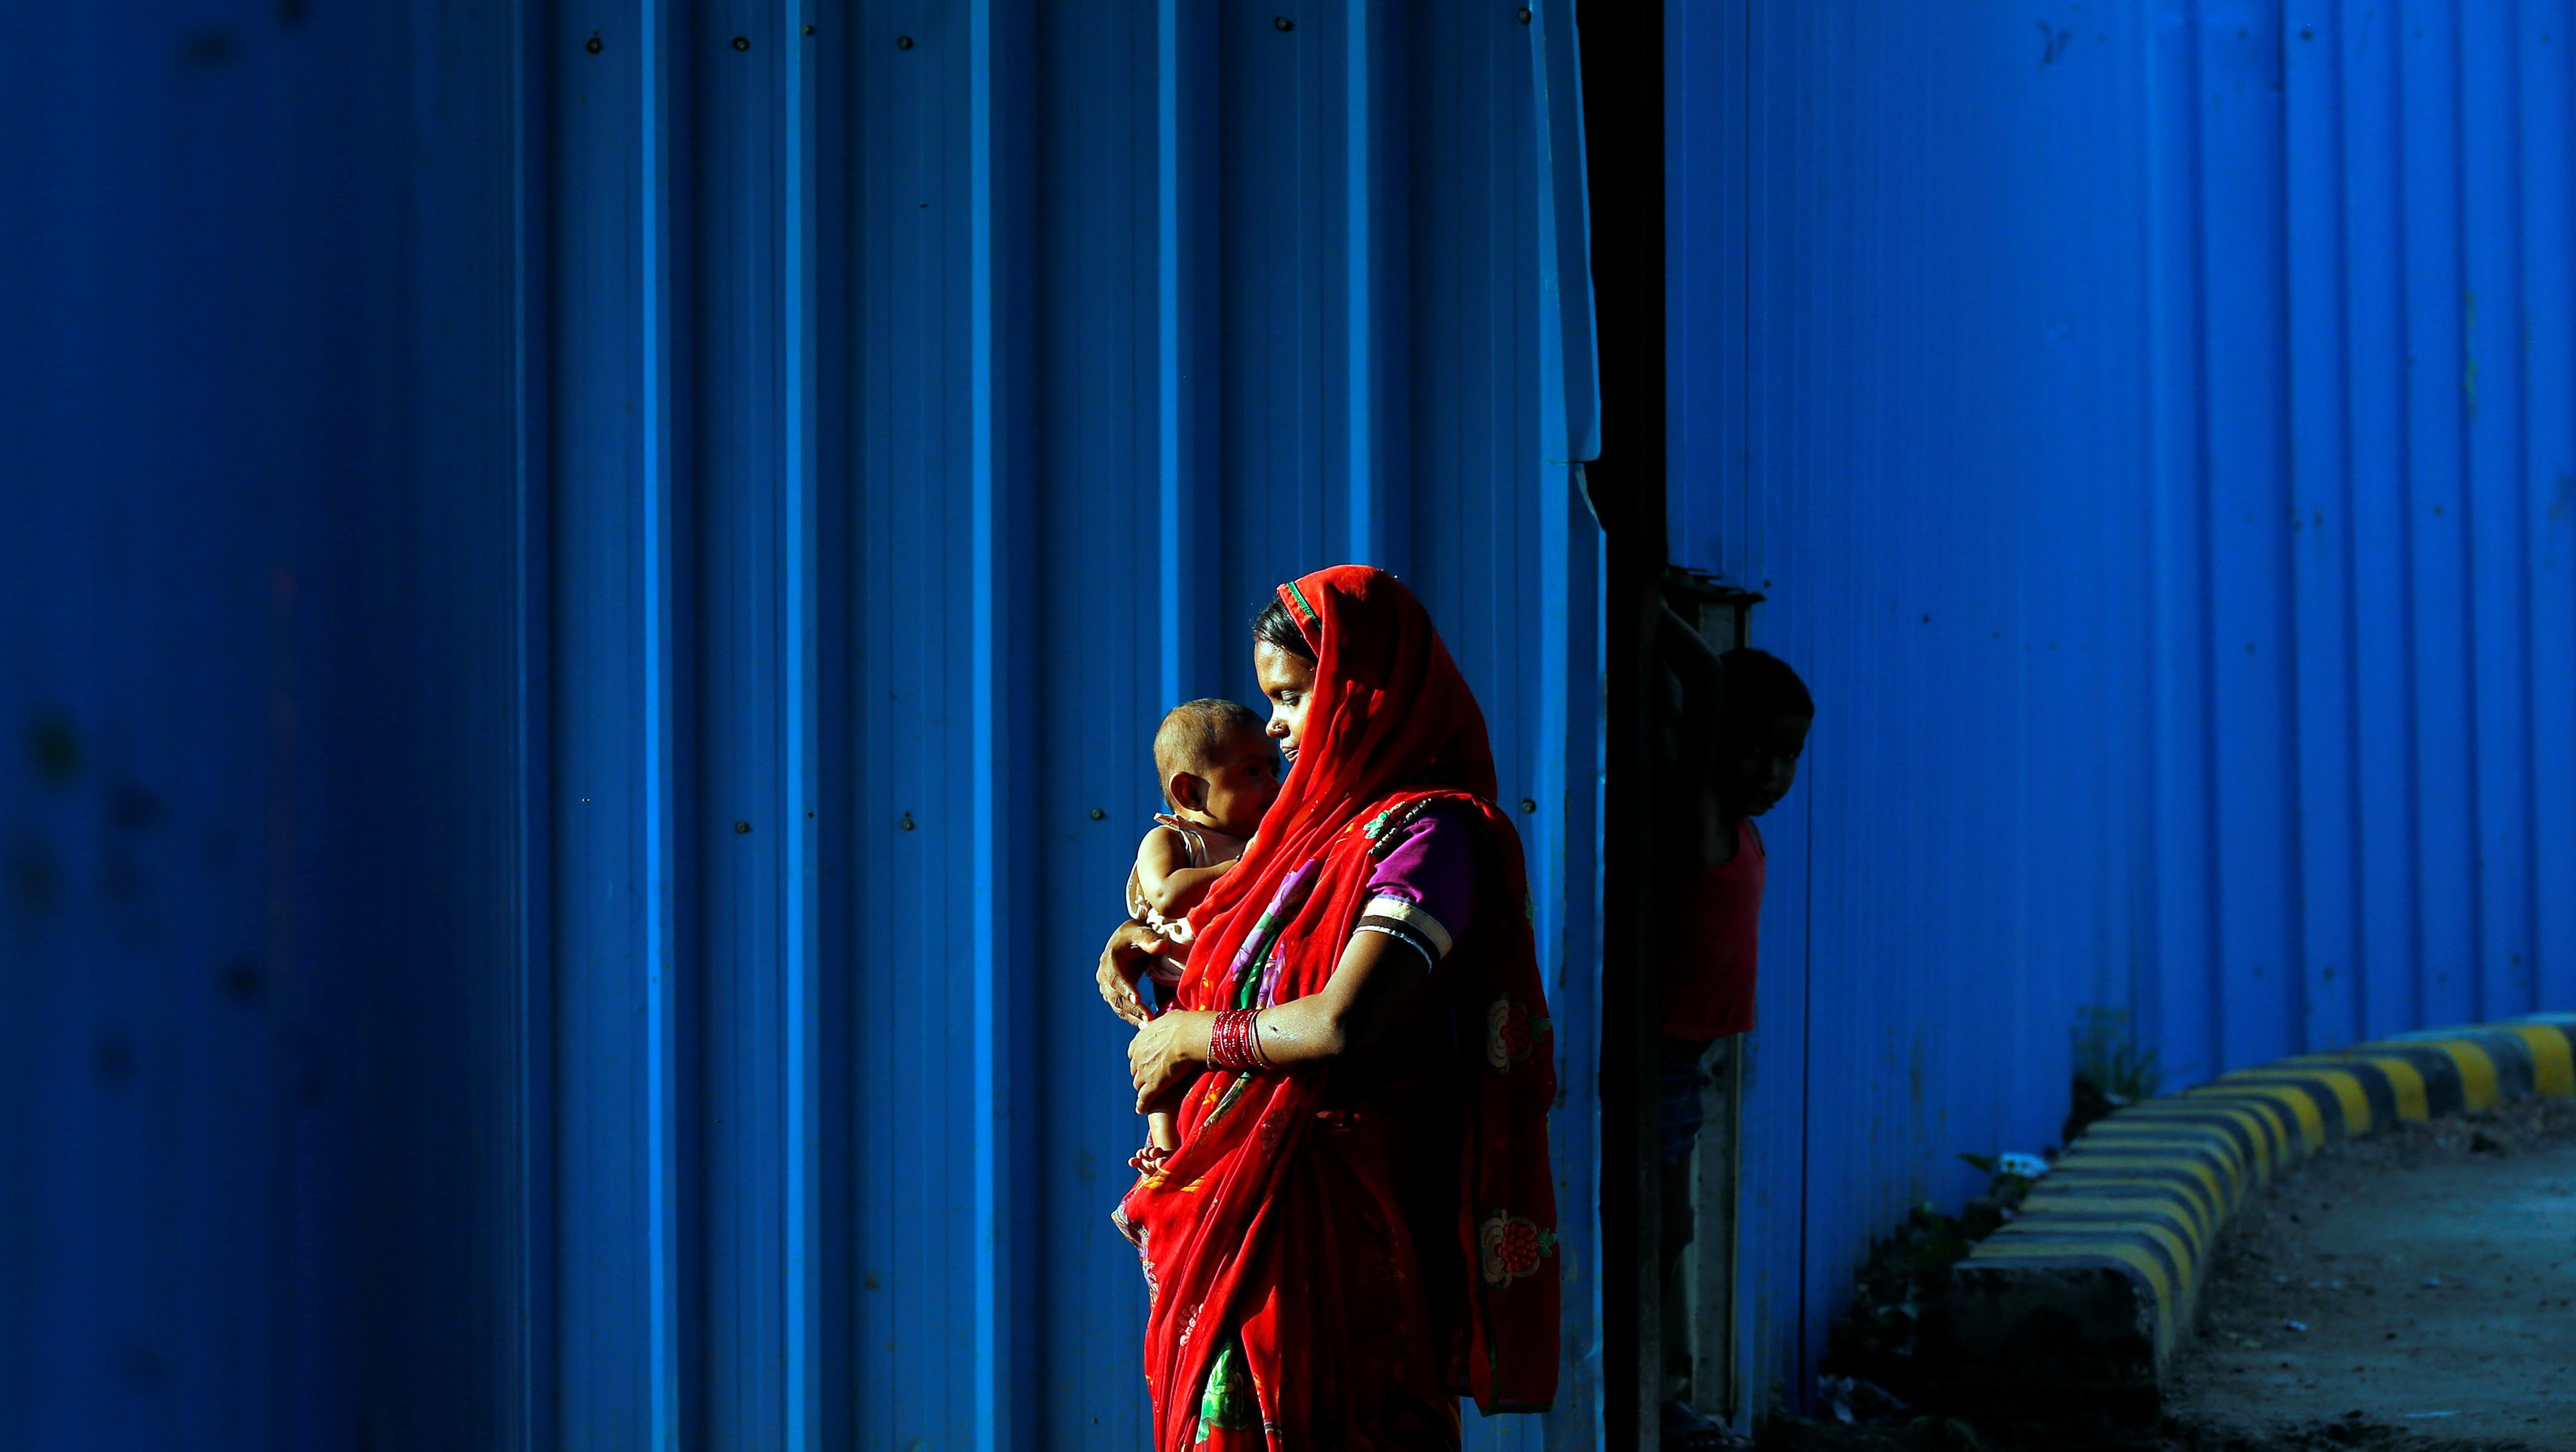 A woman day labourer holds her baby beside a construction site in New Delhi, India July 20, 2017. REUTERS/Cathal McNaughton - RTX3C83E